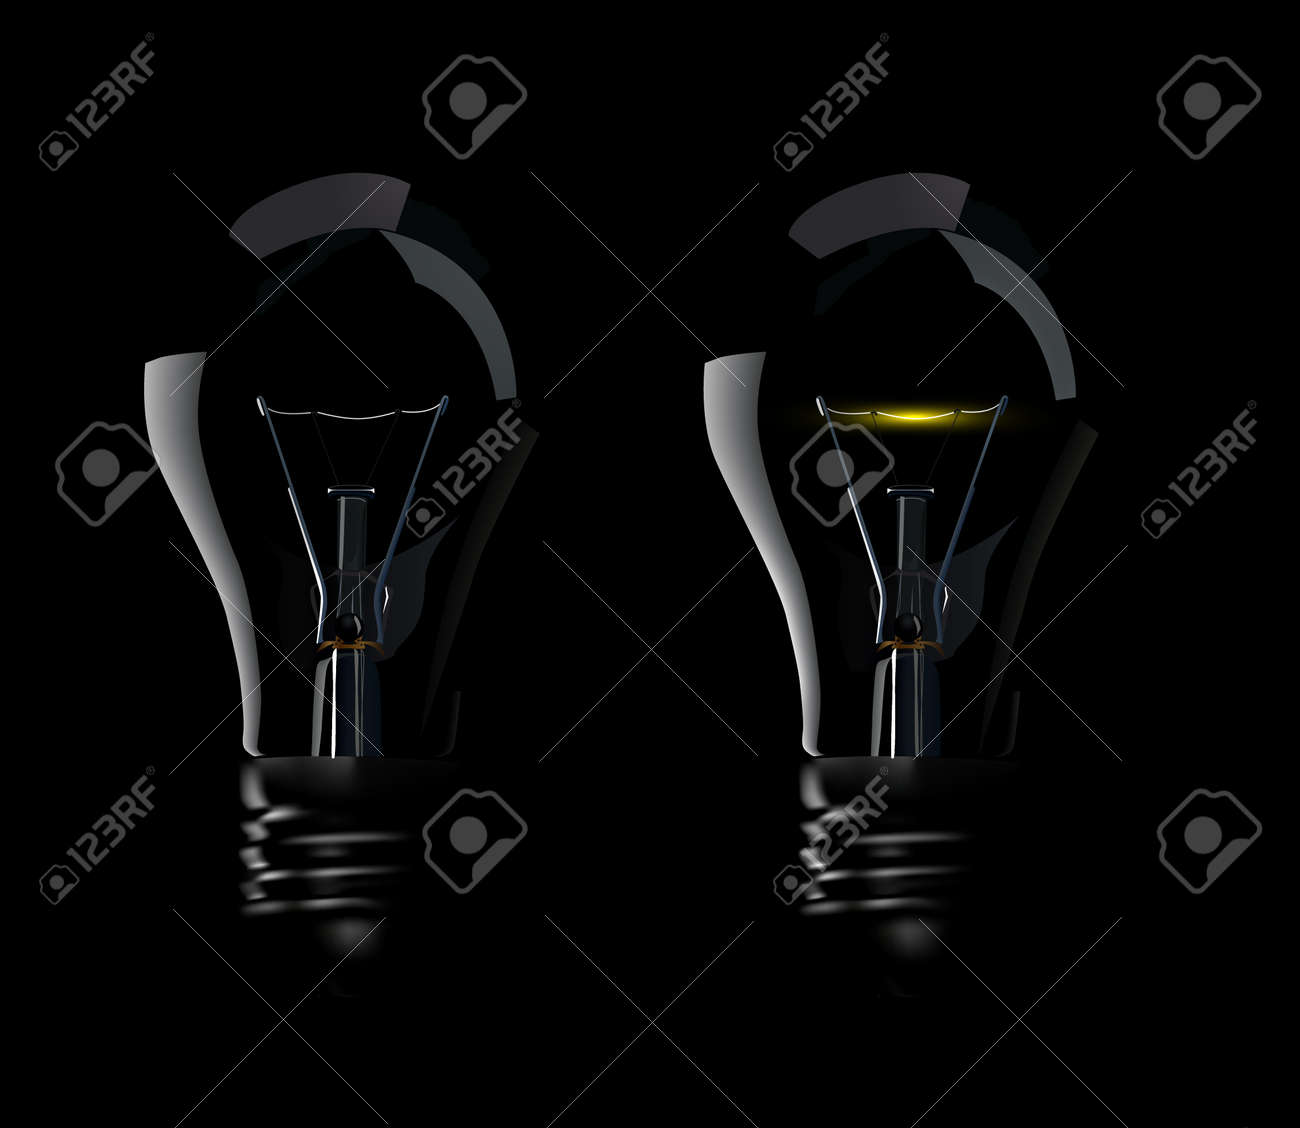 Photorealistic Vector Lamps on Black Background, no transparency Stock Vector - 5105066